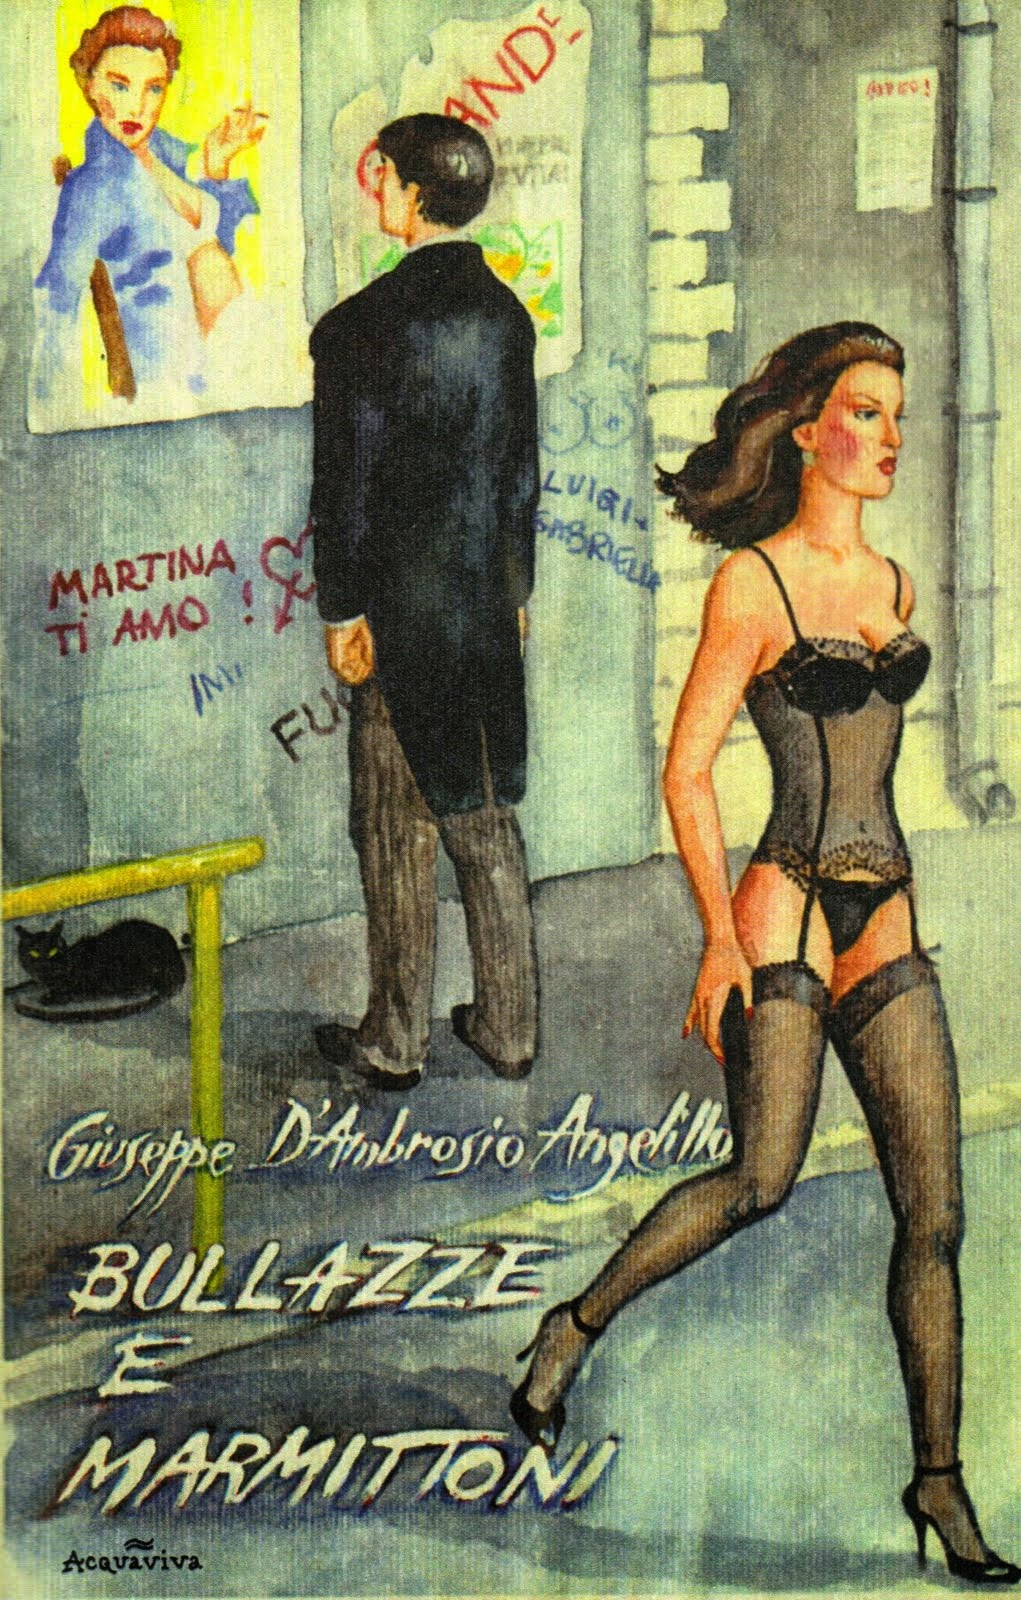 BULLAZZE E MARMITTONI on www.books.google.com